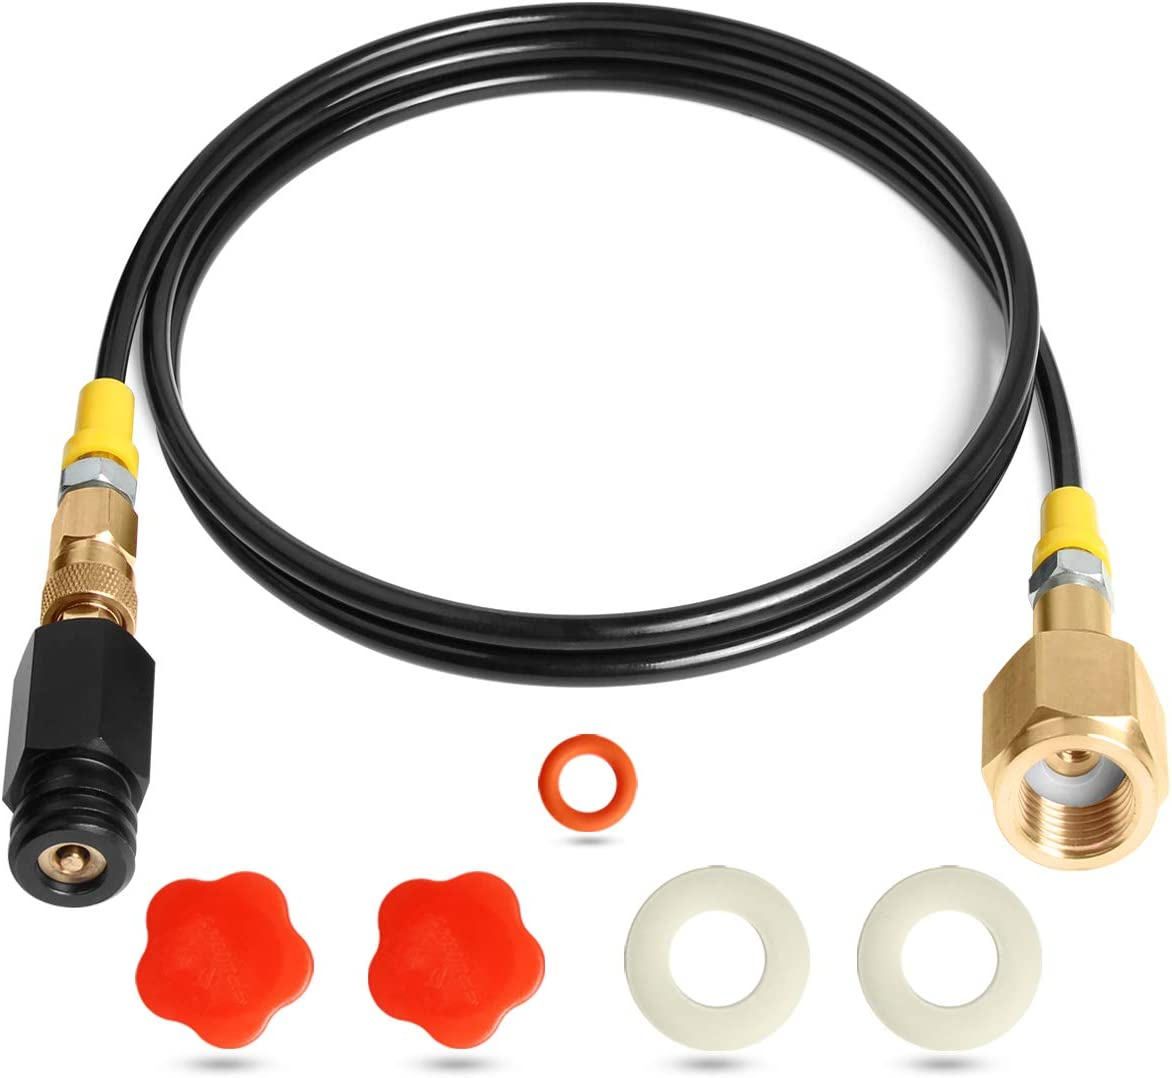 Co2 for Sodastream Adapter -60 inch Paintball Co2 Refill Adapter CGA320 Adapter Hose with Accessories Direct Connect to TR21-4,Co2 Adapter for 20 Lb Tank